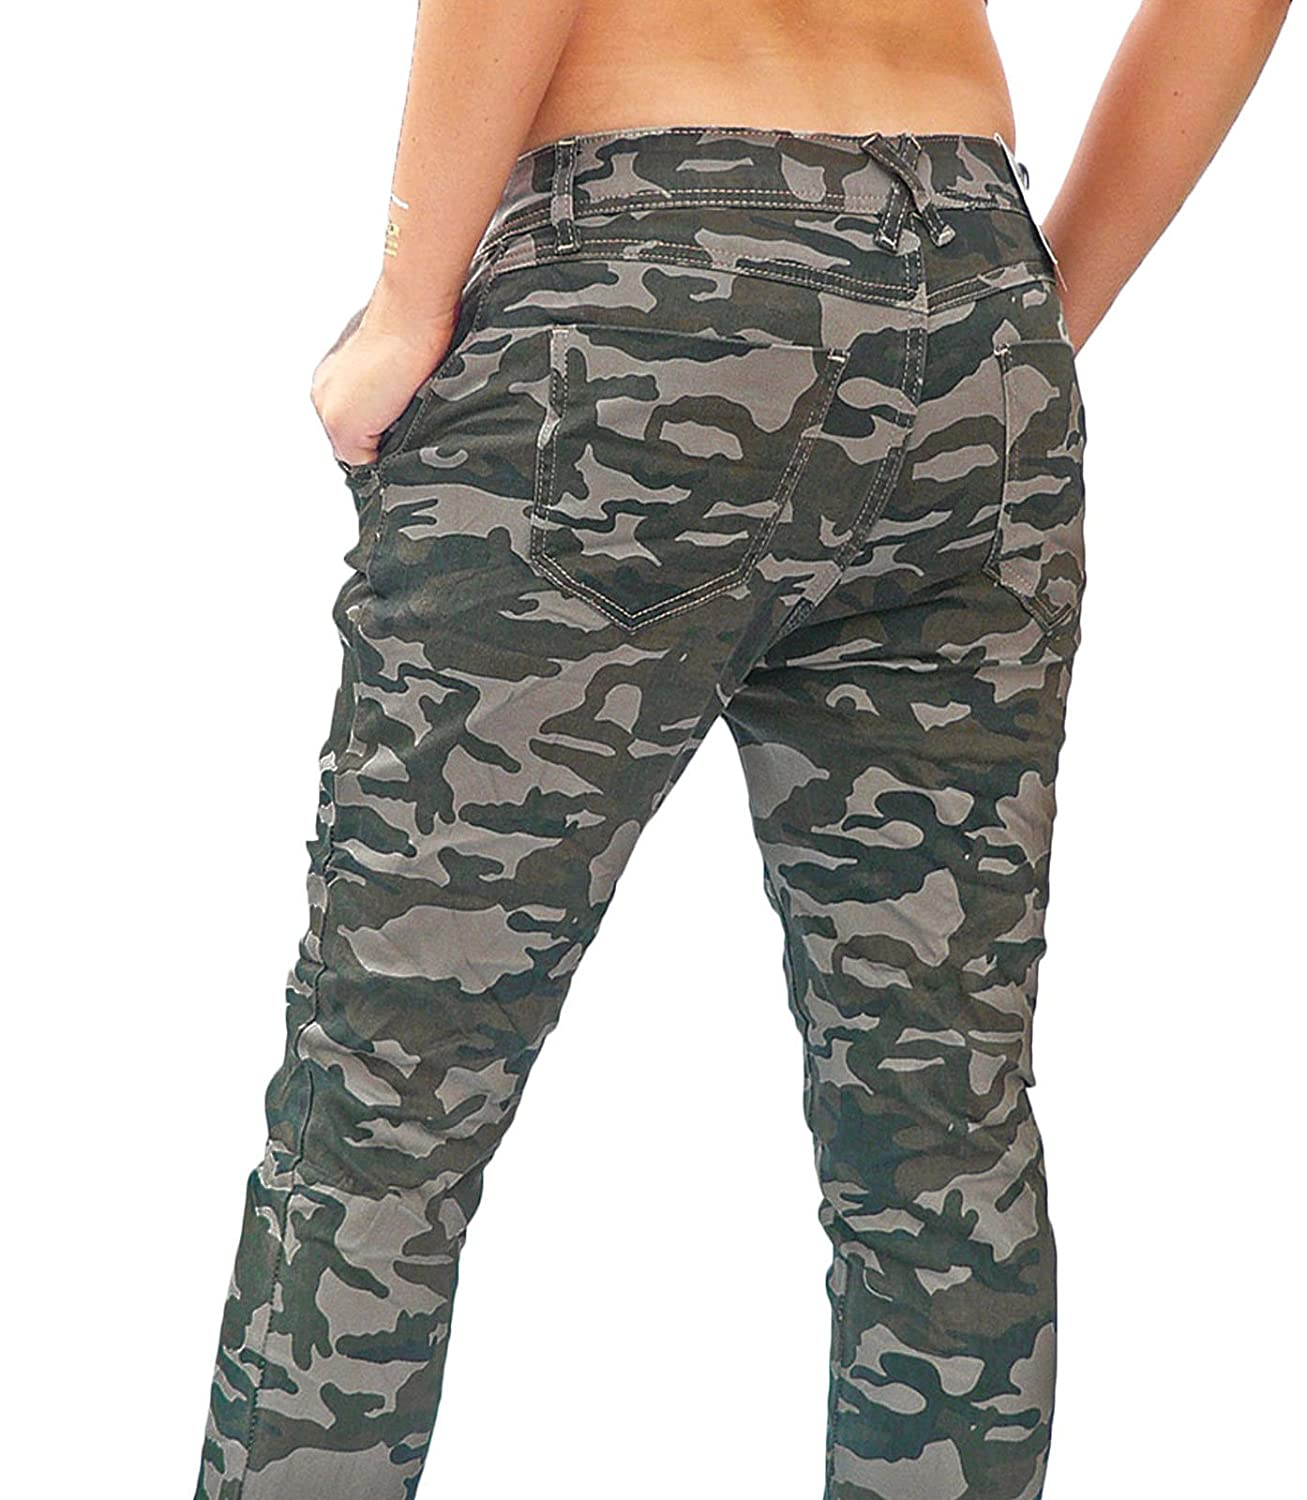 Damen Jeans Hose Chino Baggy Stretch Boyfriend Army Camouflage Military Hüfthose